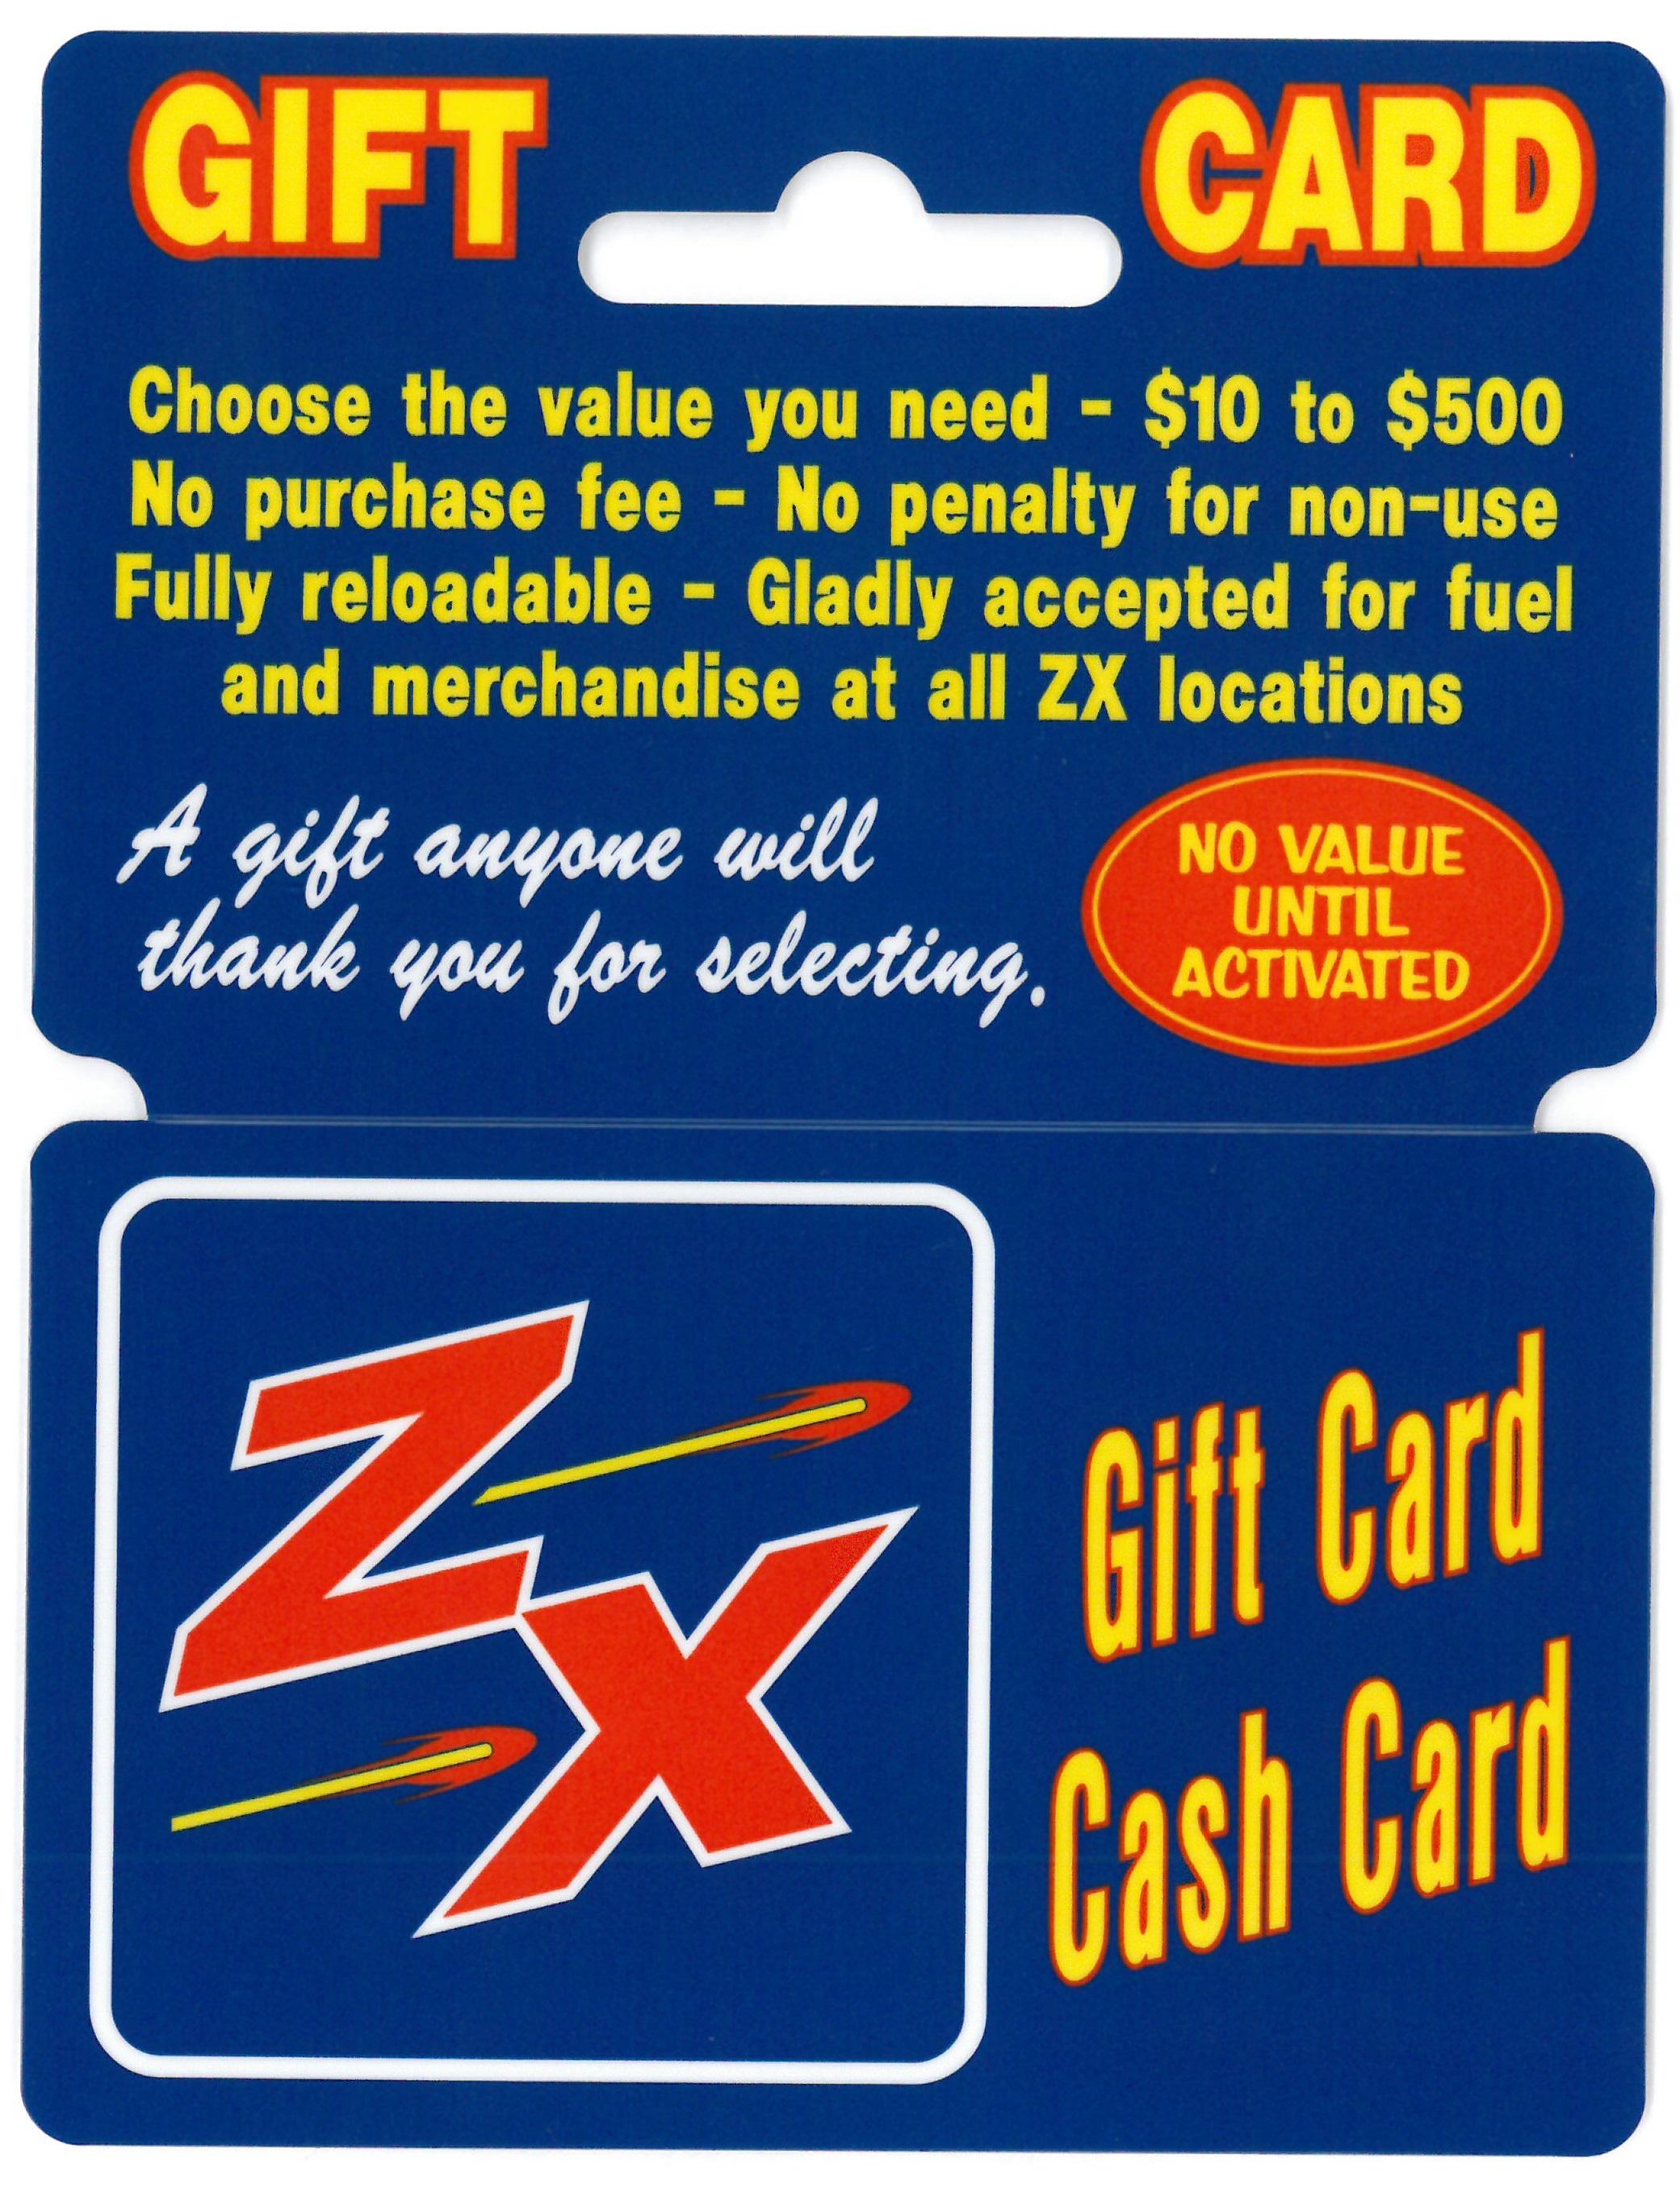 About - ZX Gas Stations and Convenience Stores